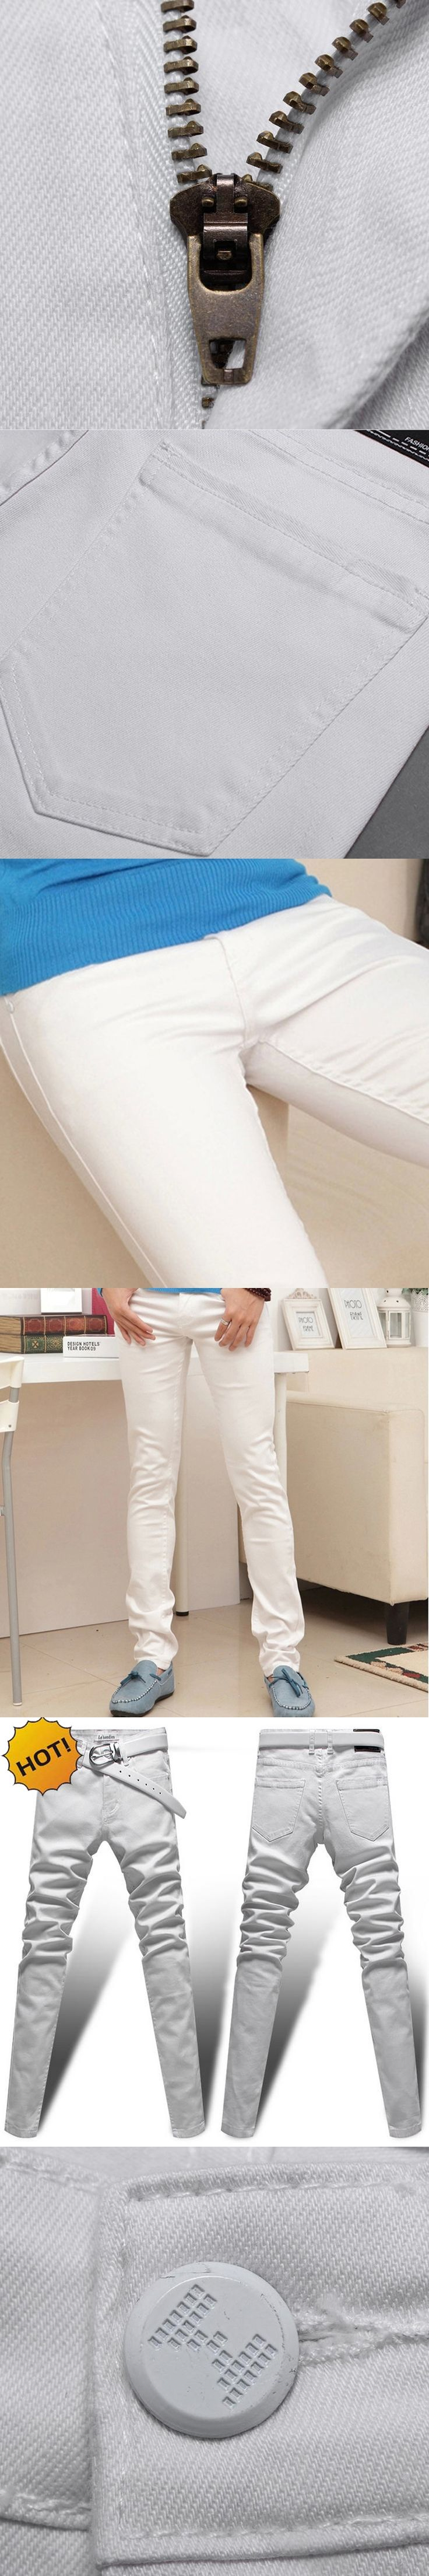 High Quality Fashion White Jeans Men Slim Fit Stretch Denim Leg Hip Hop Skinny Jeans Men Teenagers Boy Bottoms 28-35